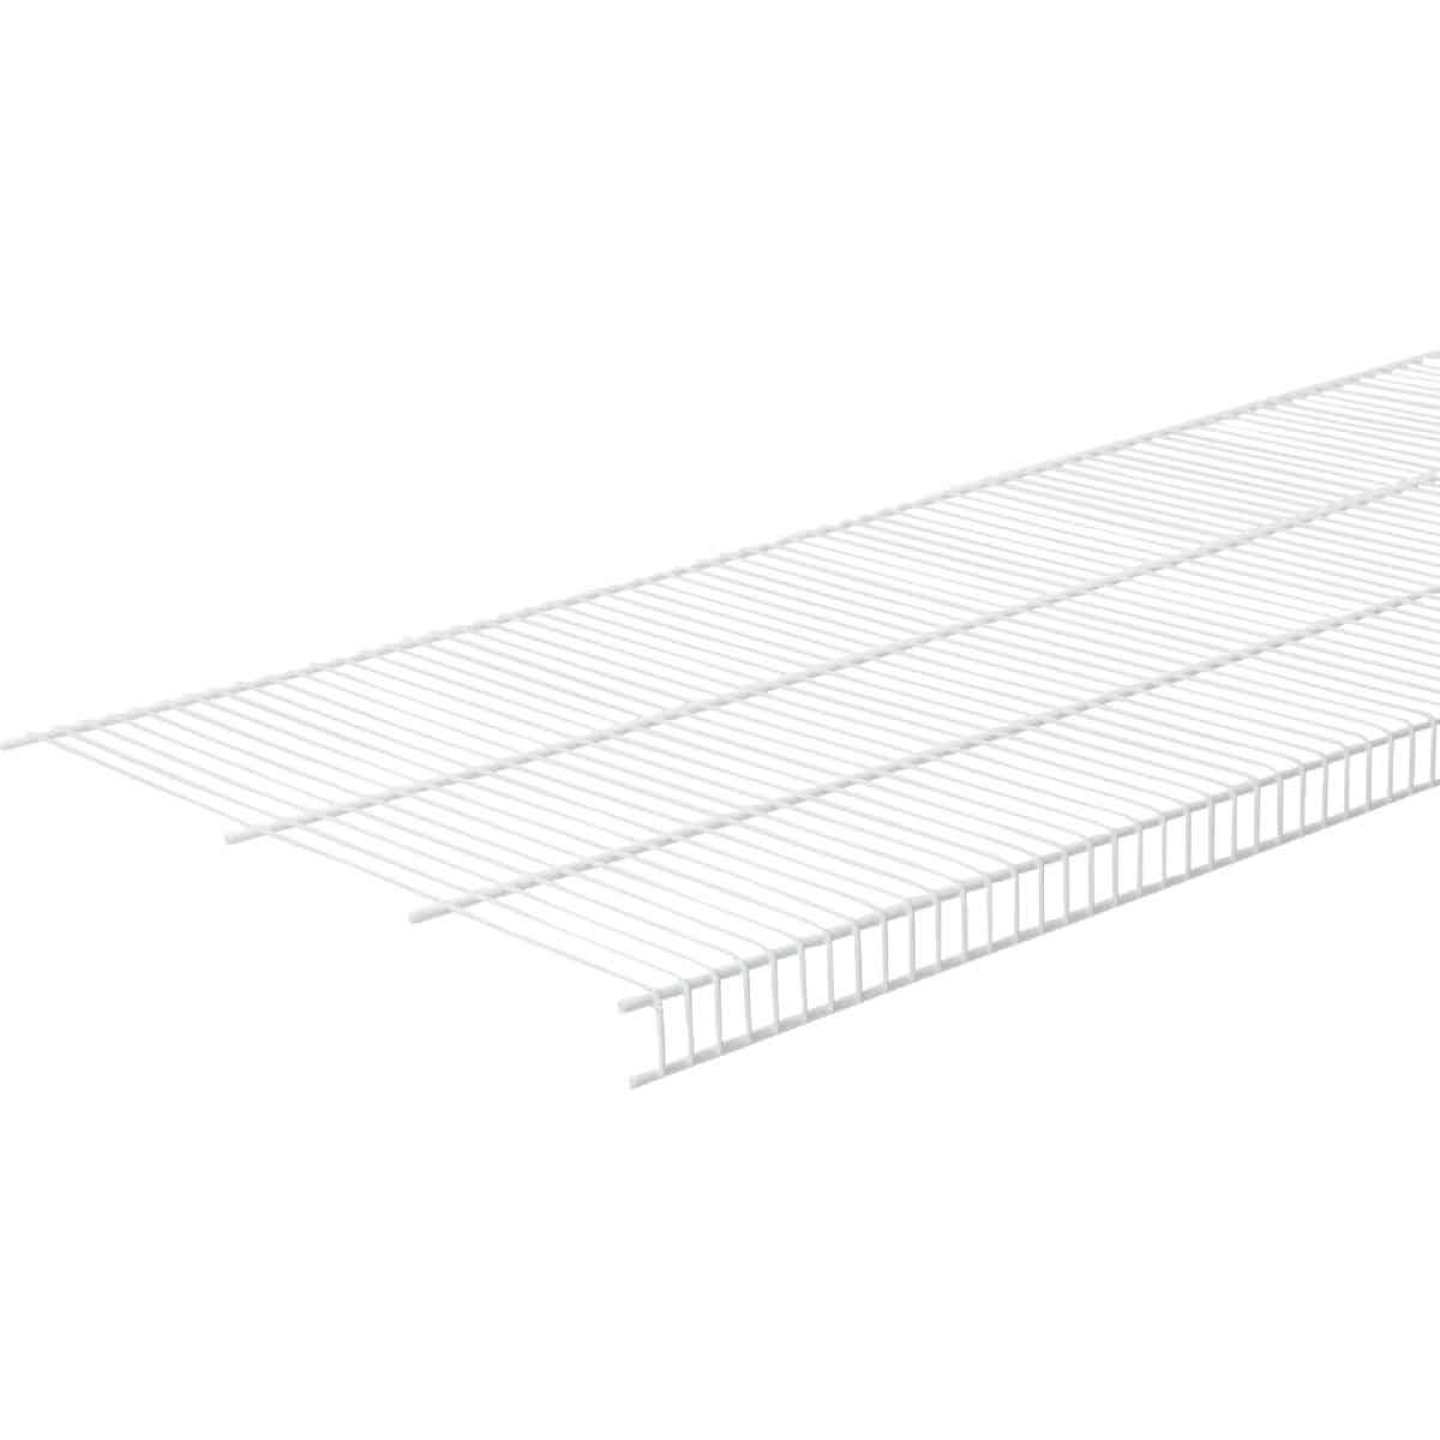 ClosetMaid SuperSlide 12 Ft. W. x 20 In. D. Ventilated Closet Shelf, White Image 2